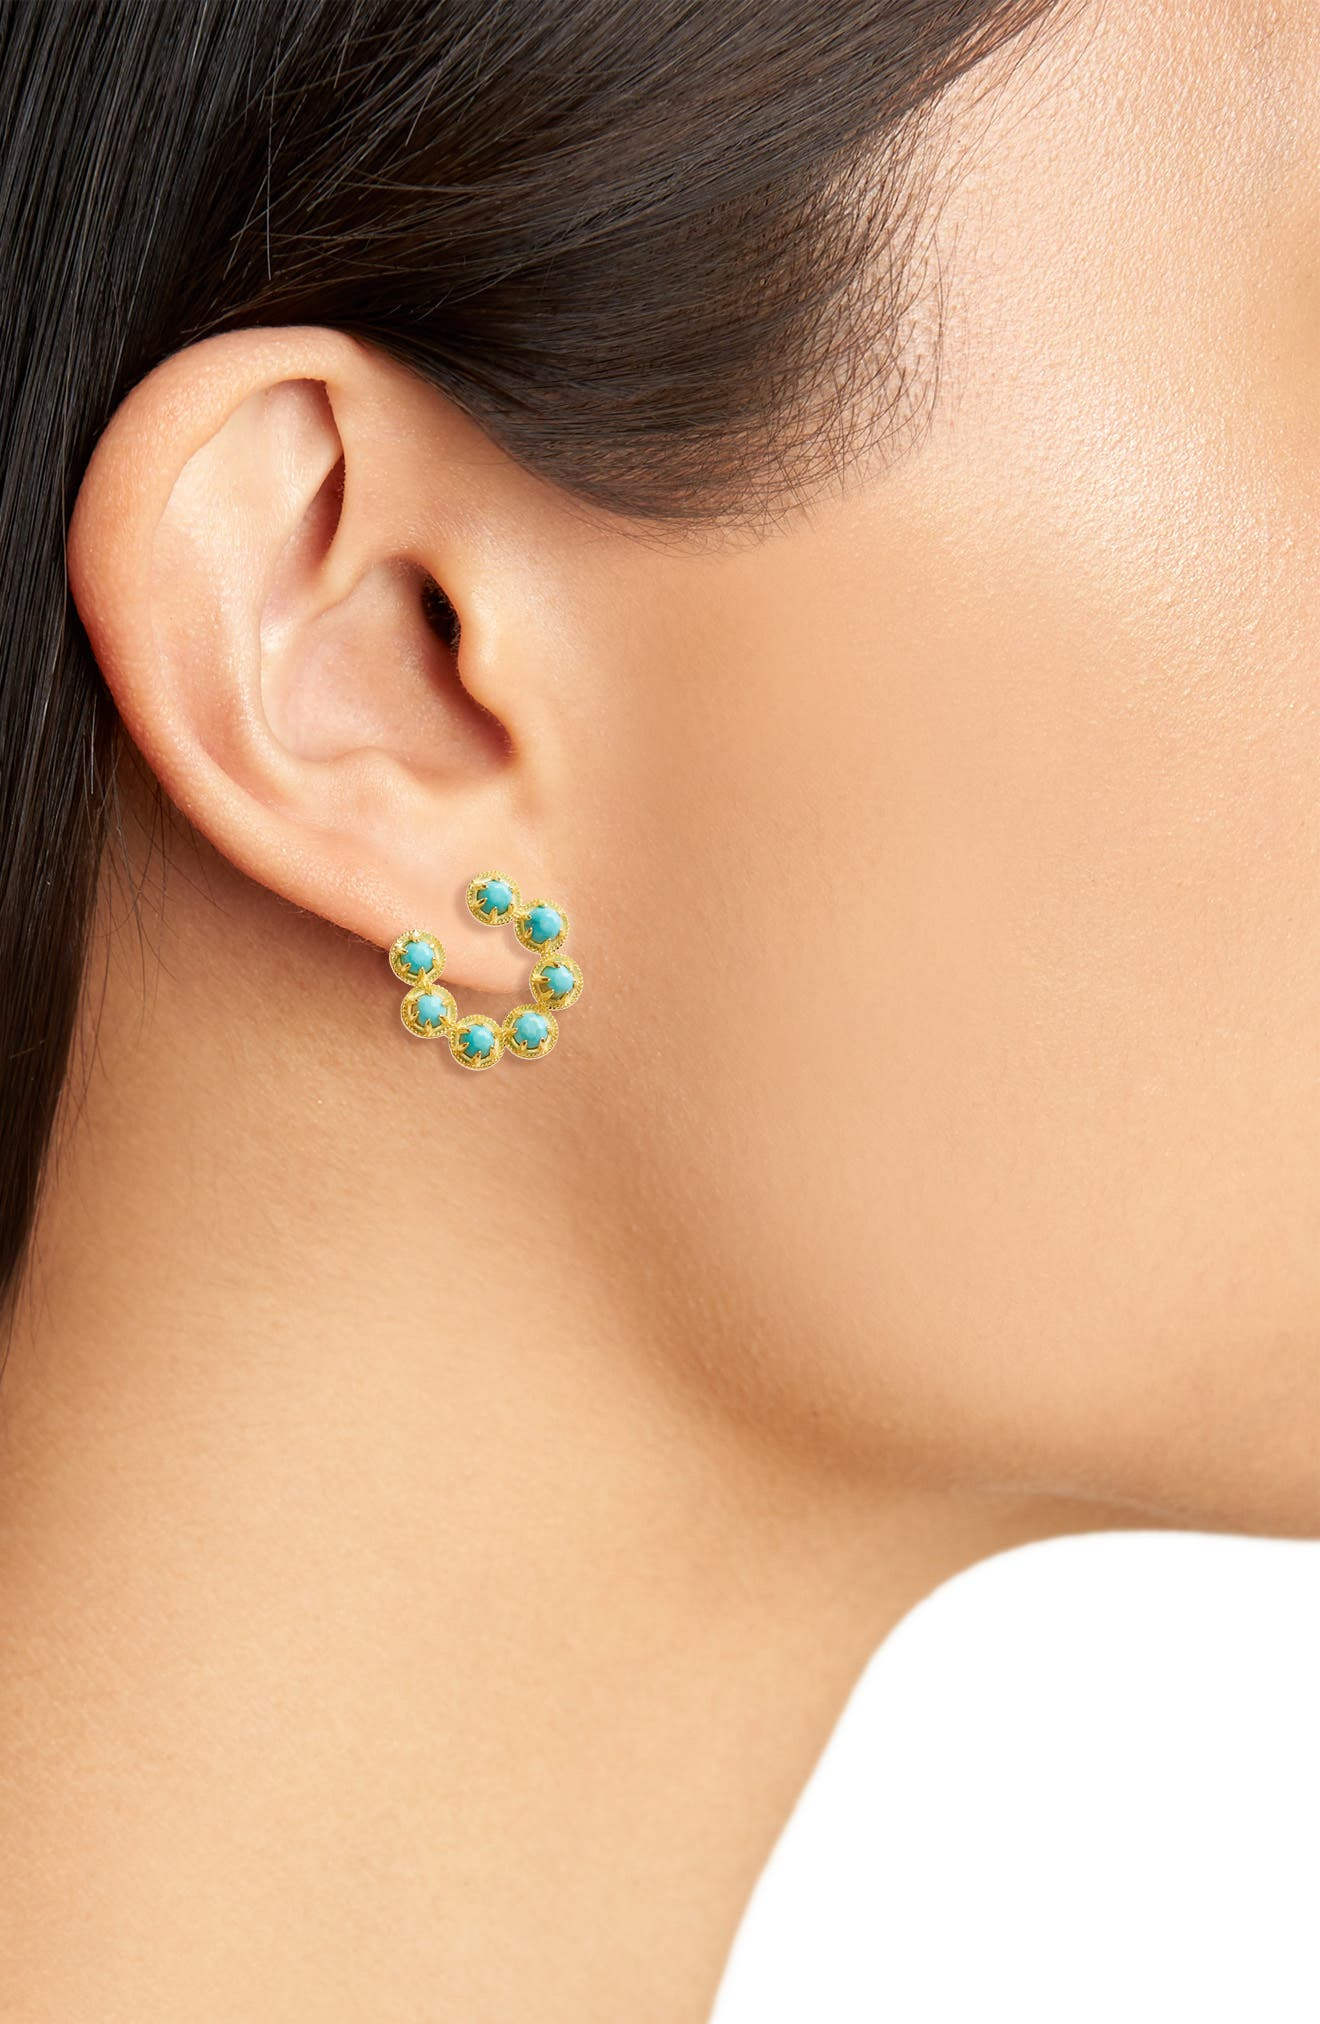 Cleo Vermeil Hoop Earrings,                             Alternate thumbnail 2, color,                             TURQUOISE/ GOLD